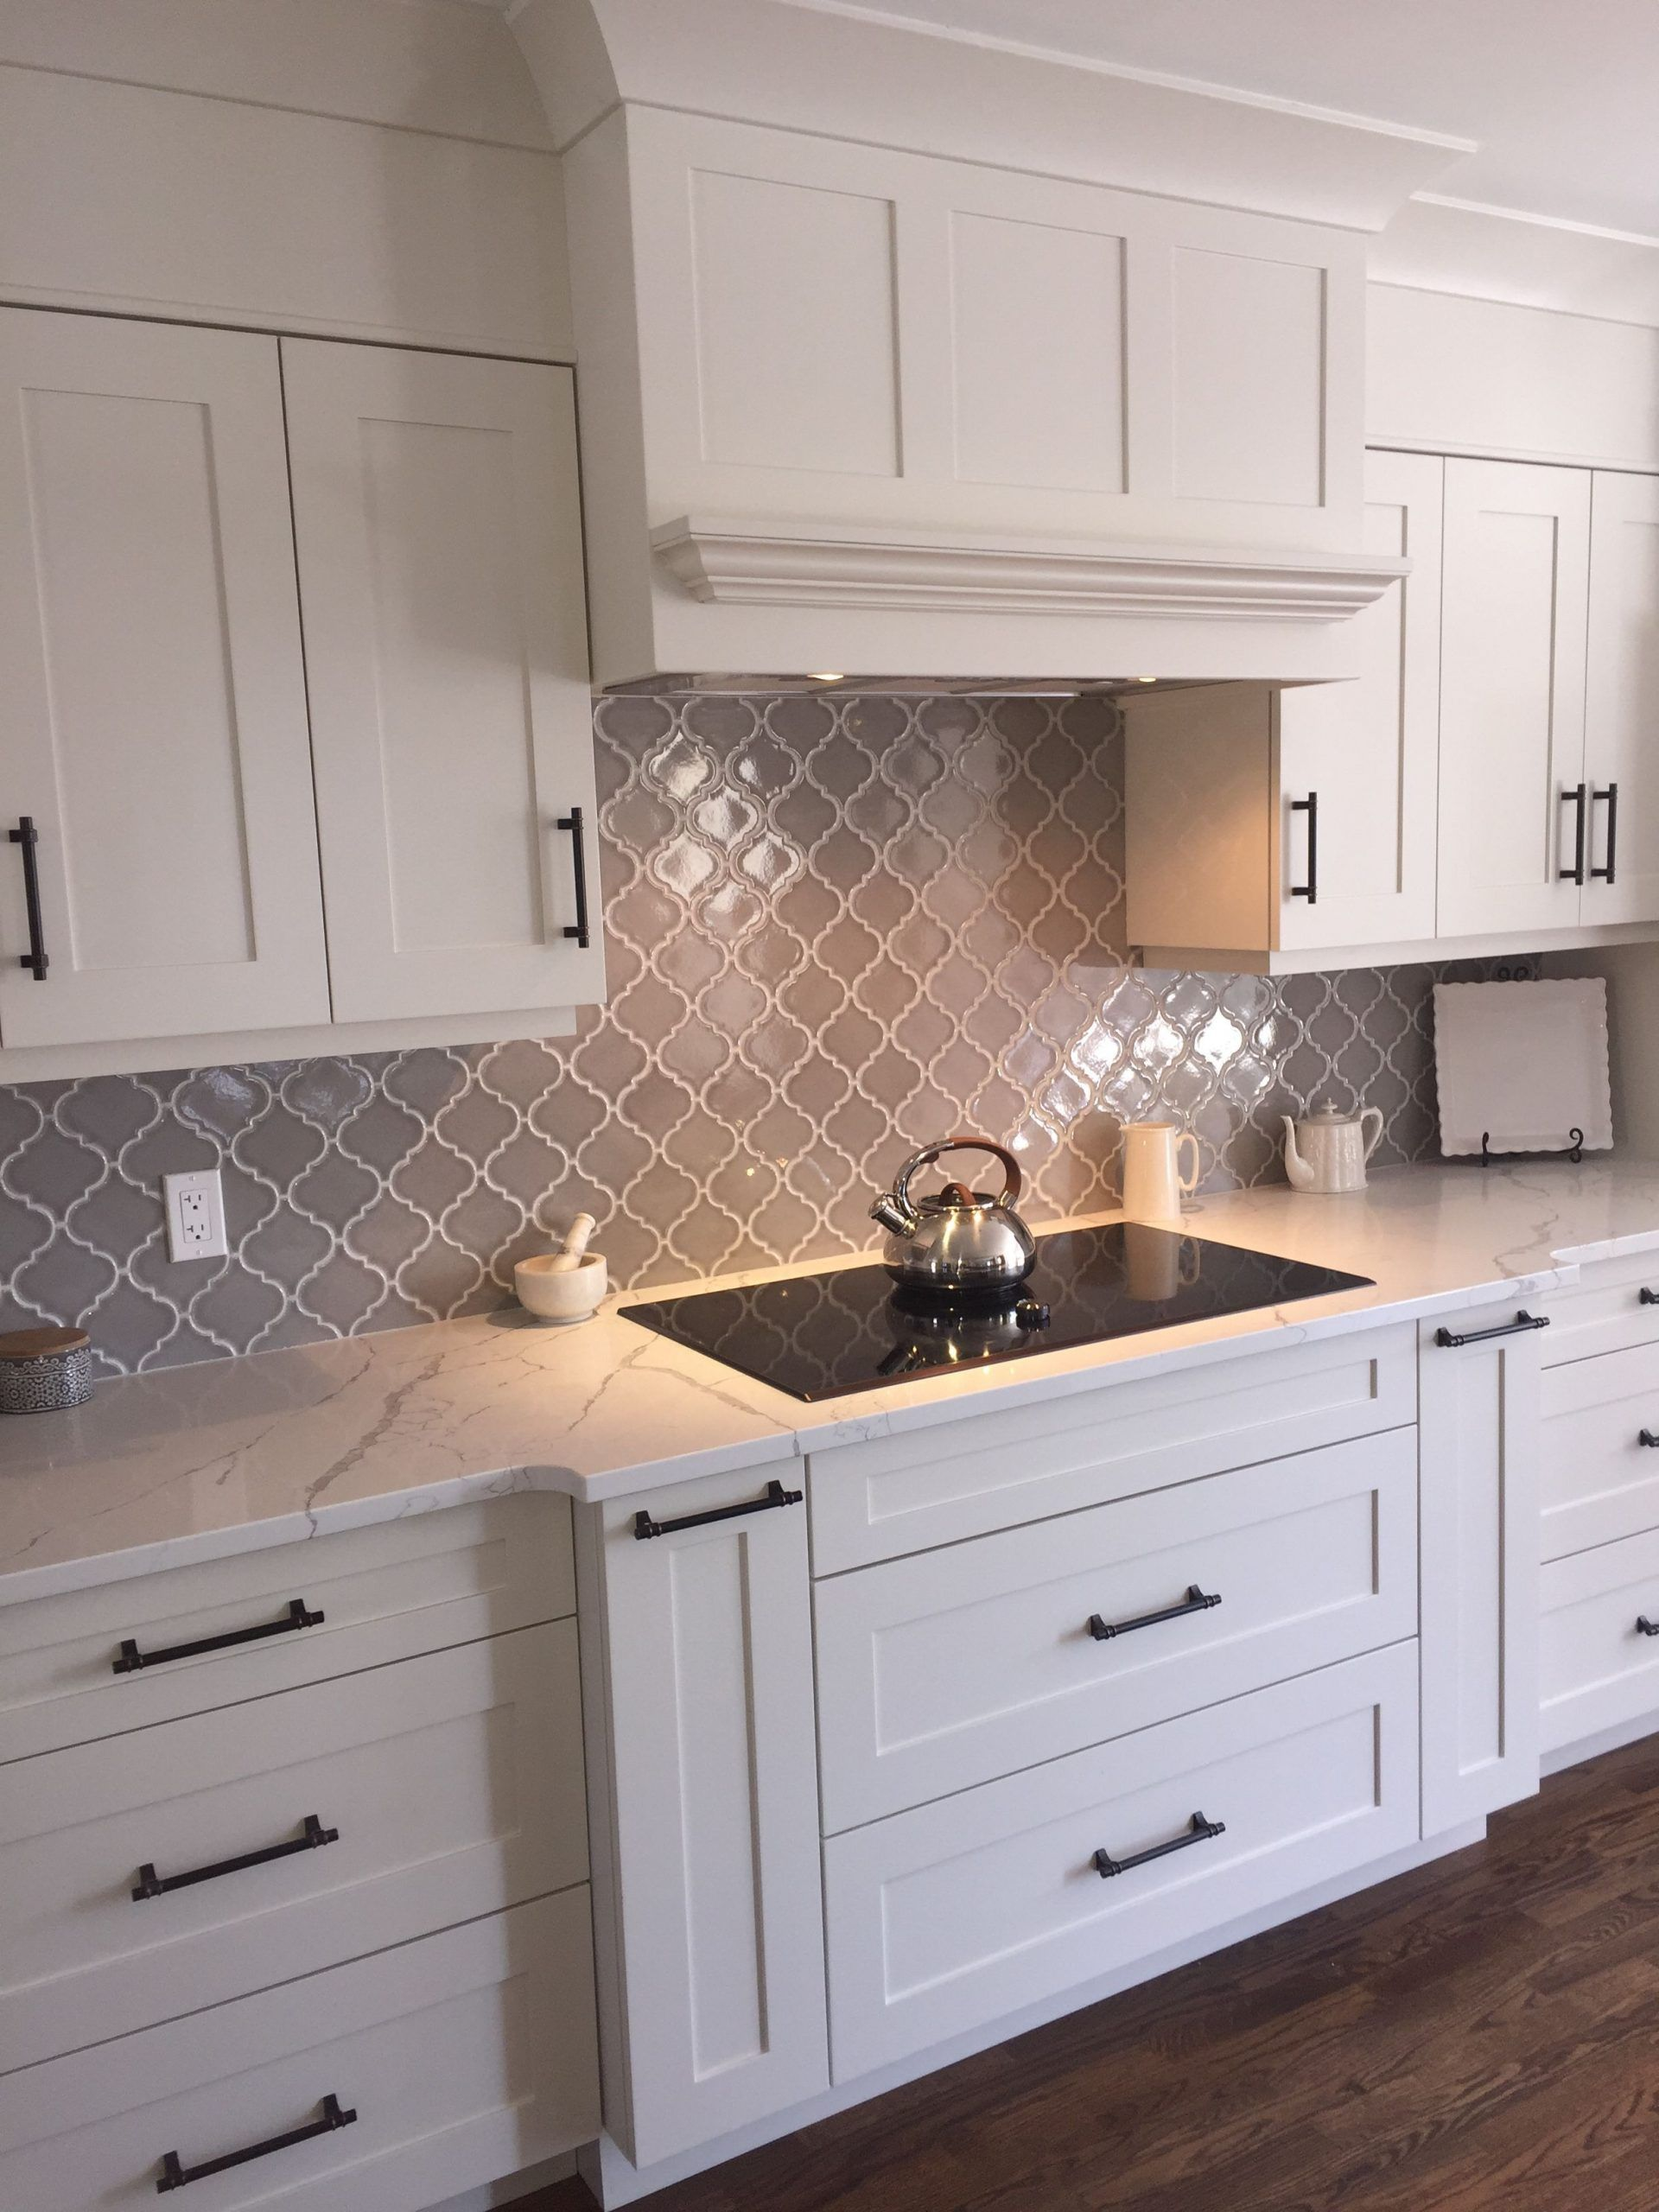 A Comprehensive Overview On Home Decoration In 2020 Kitchen Cabinets Decor White Kitchen Design Kitchen Inspirations